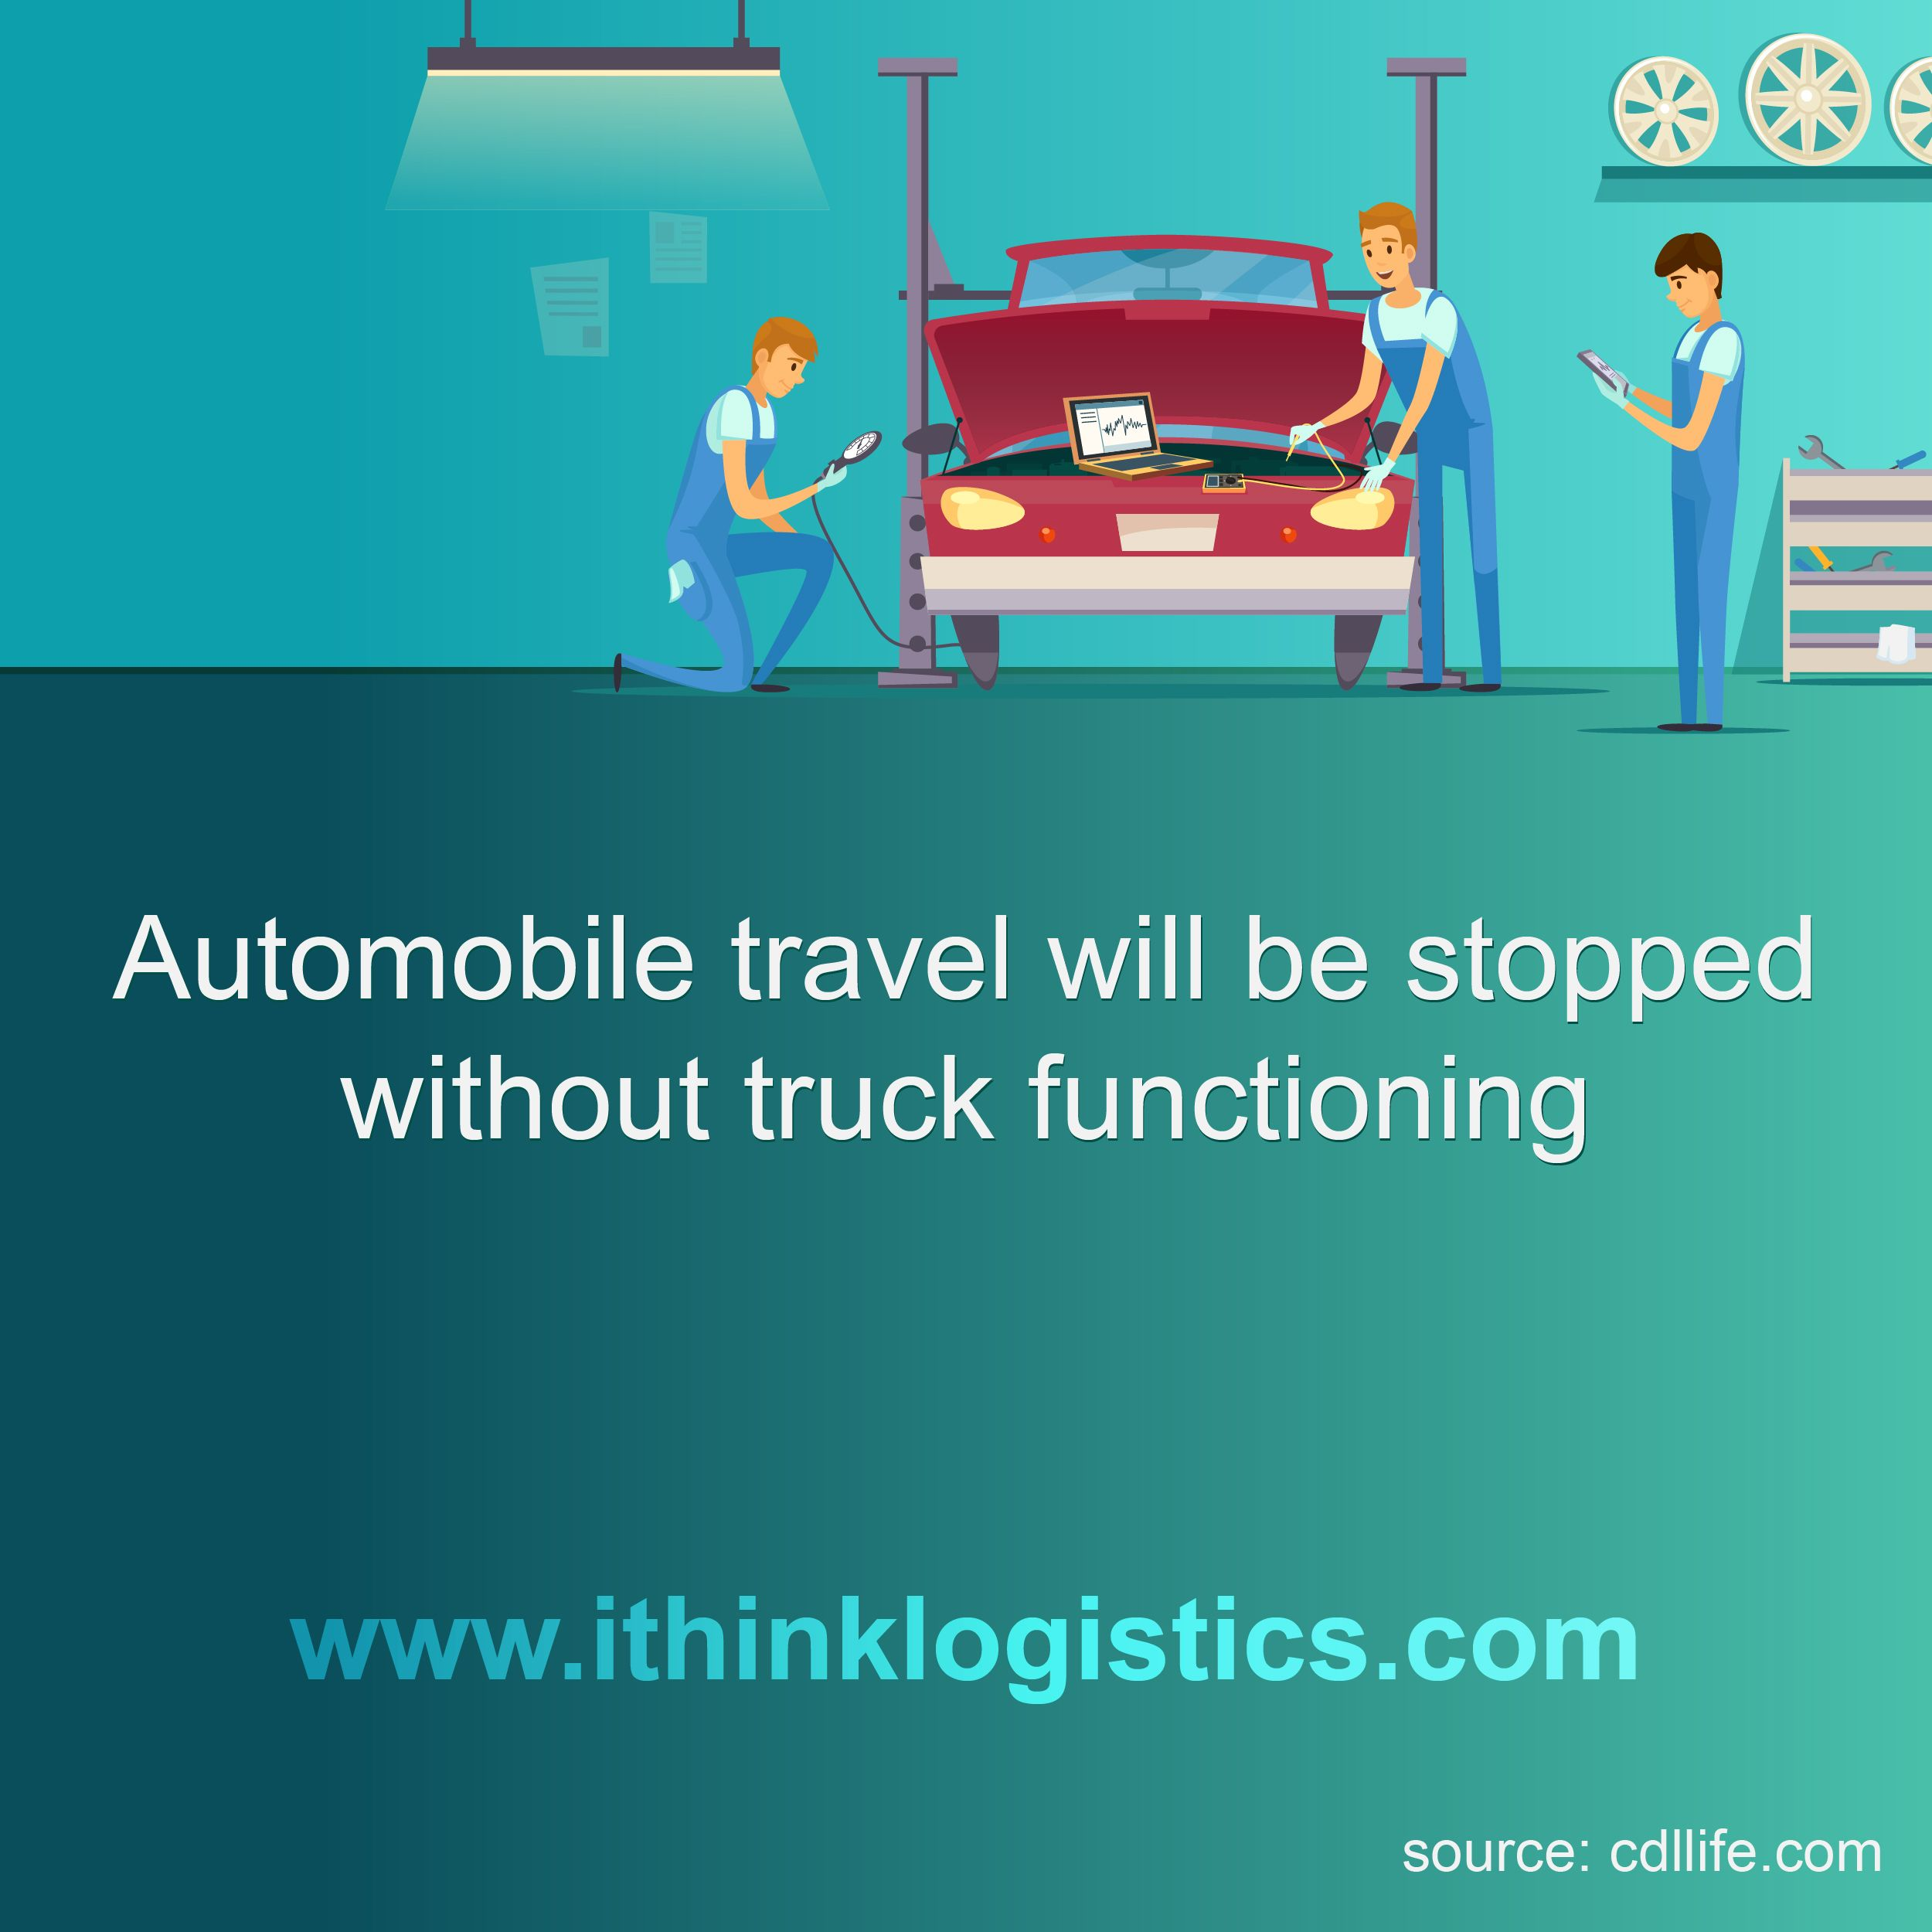 All The Automobiles Would Be Stopped Without Functioning Of The